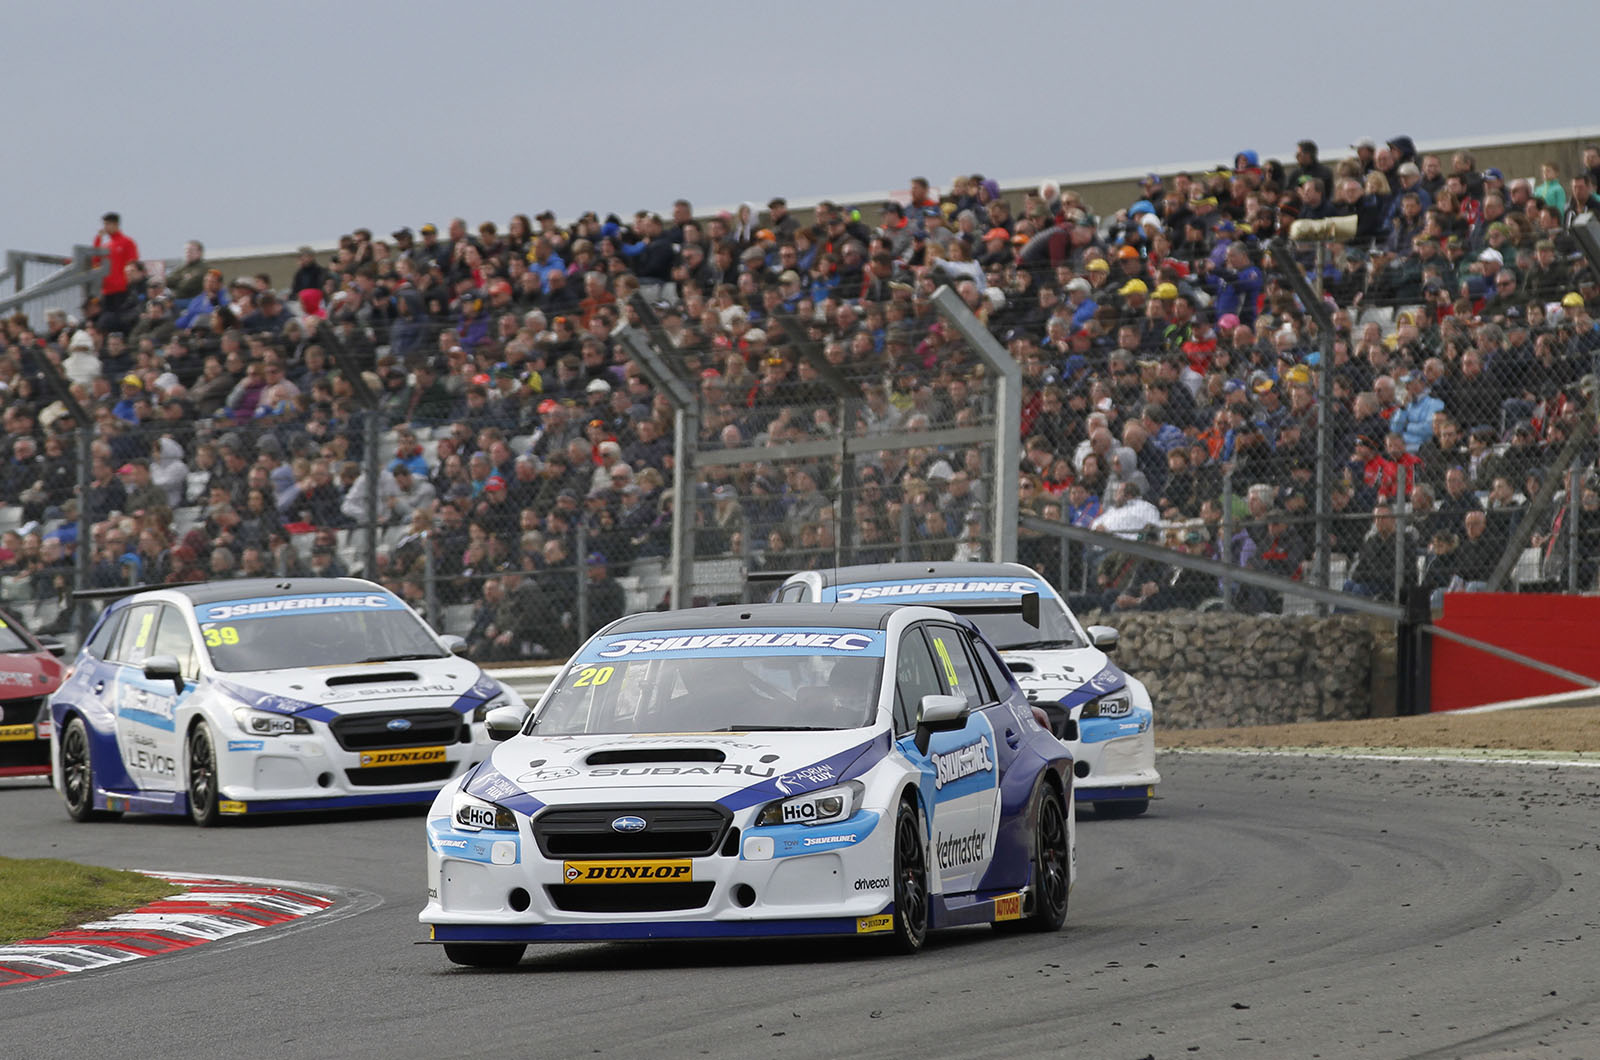 Subaru partnered with Team BMR to tackle the BTCC